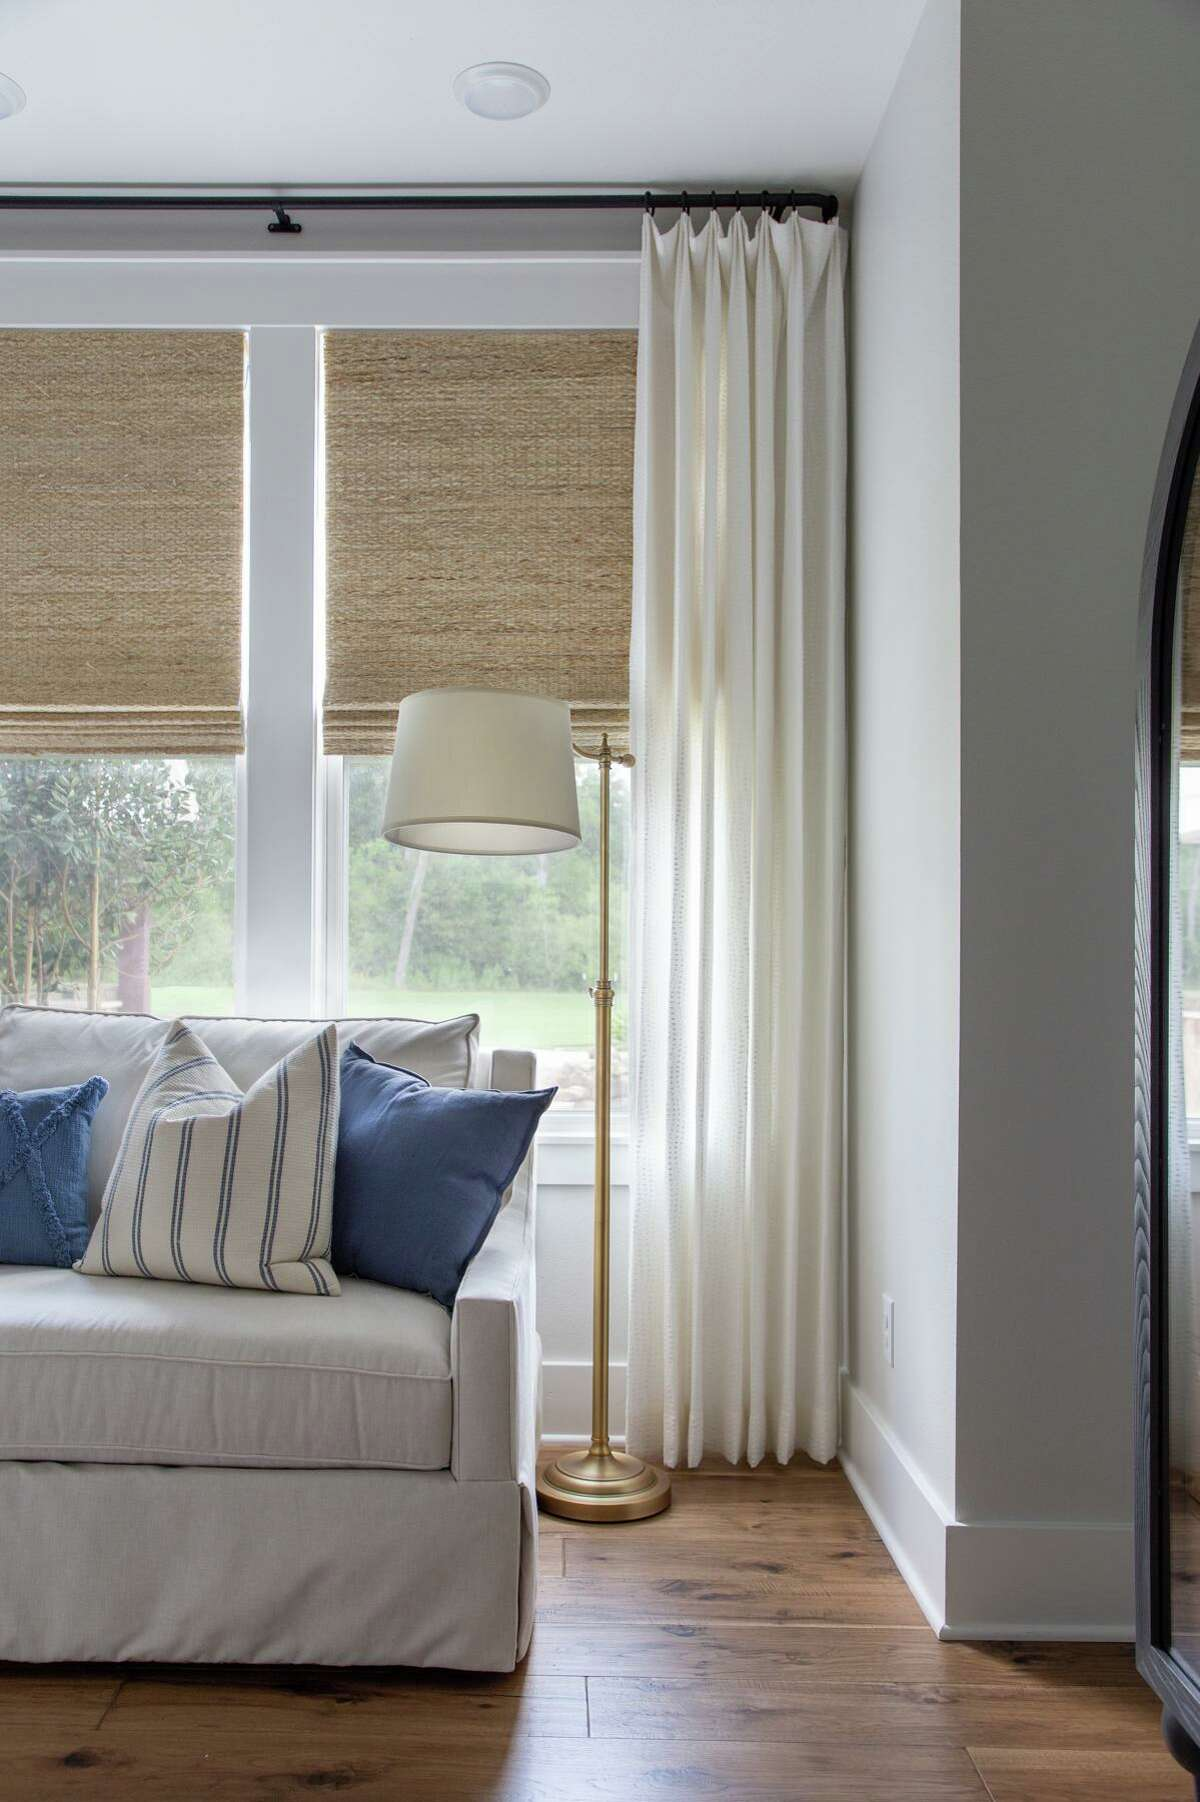 Moore House Interiors layered blackout-lined seagrass window shades with linen draperies in the primary bedroom.